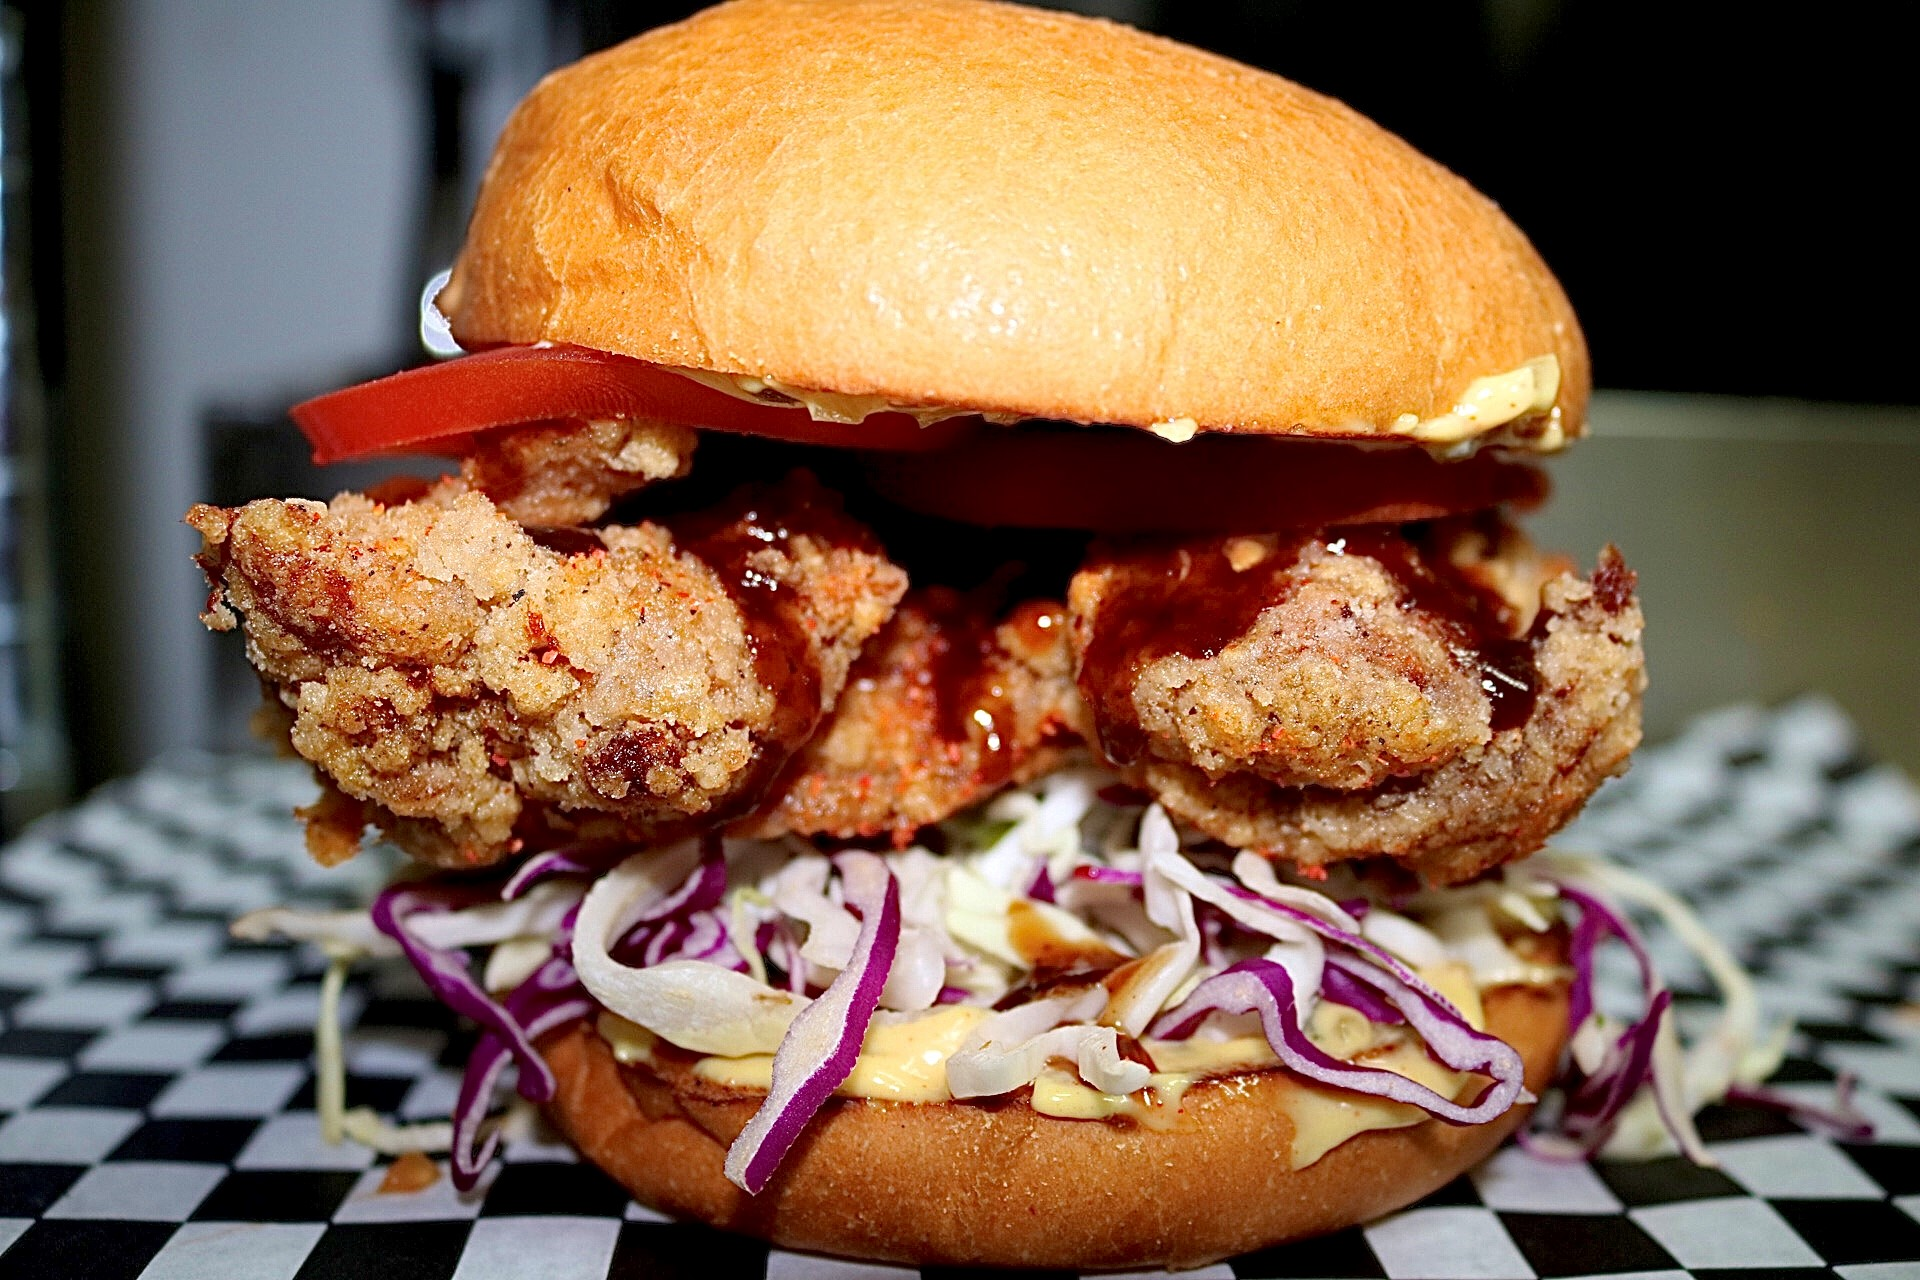 THE OTHER GUYS – Karaage Chicken, Shredded Cabbage, Tomatoes, Dried Chili Blend, MK Sauce, Tonkatsu Sauce